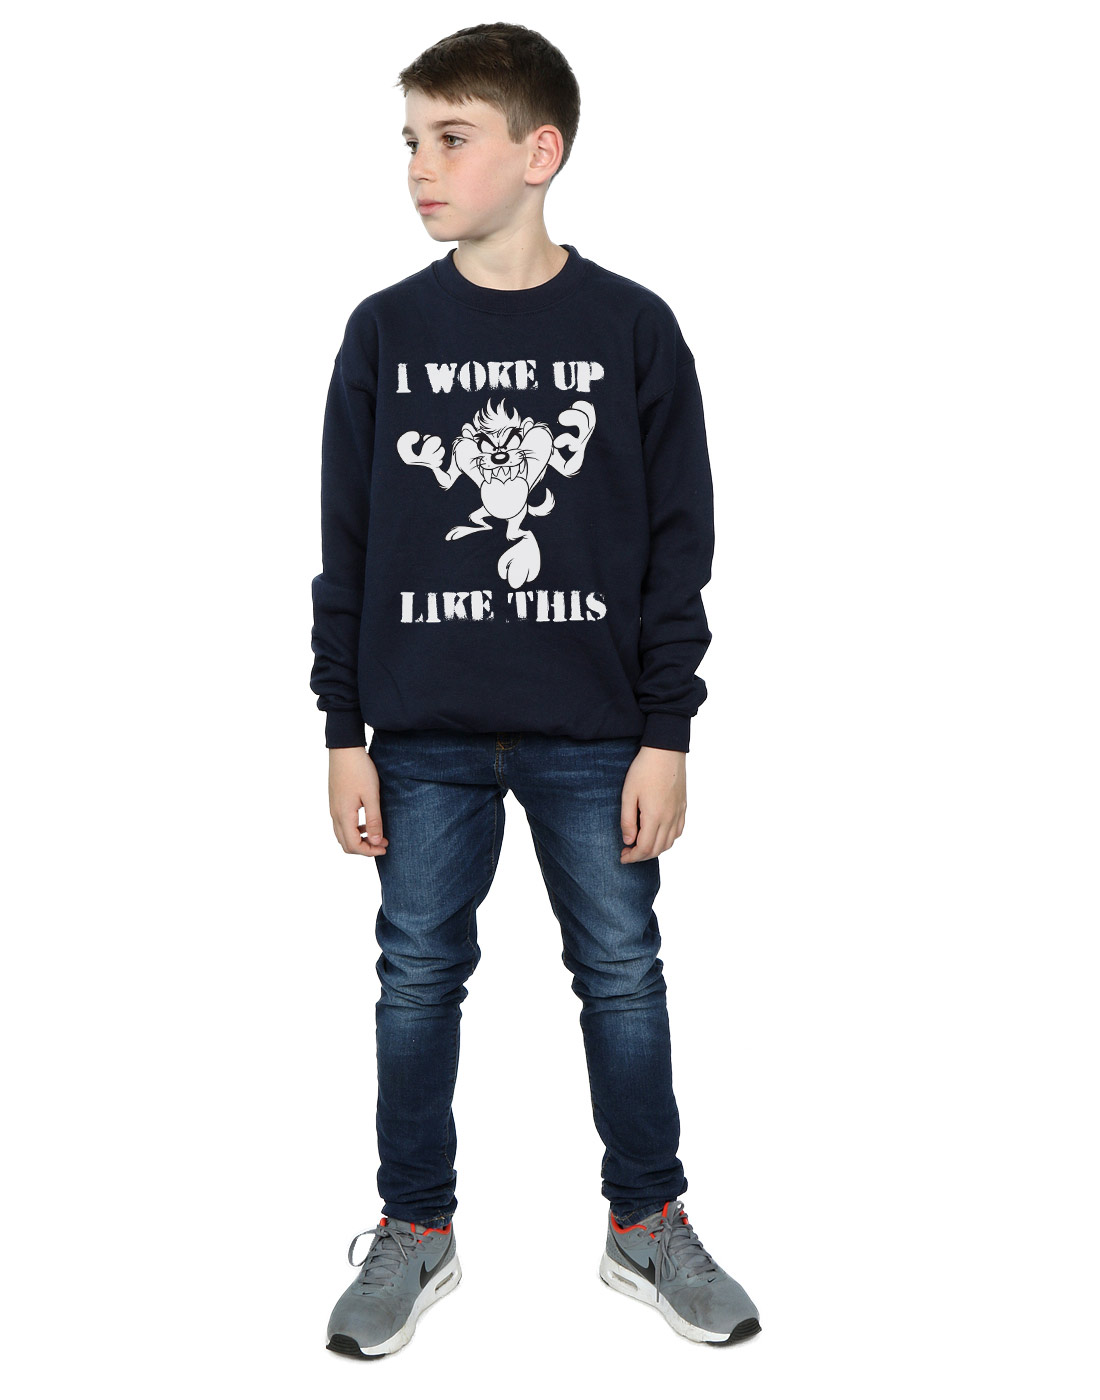 Looney-Tunes-Jungen-Taz-I-Woke-Up-Like-This-Sweatshirt